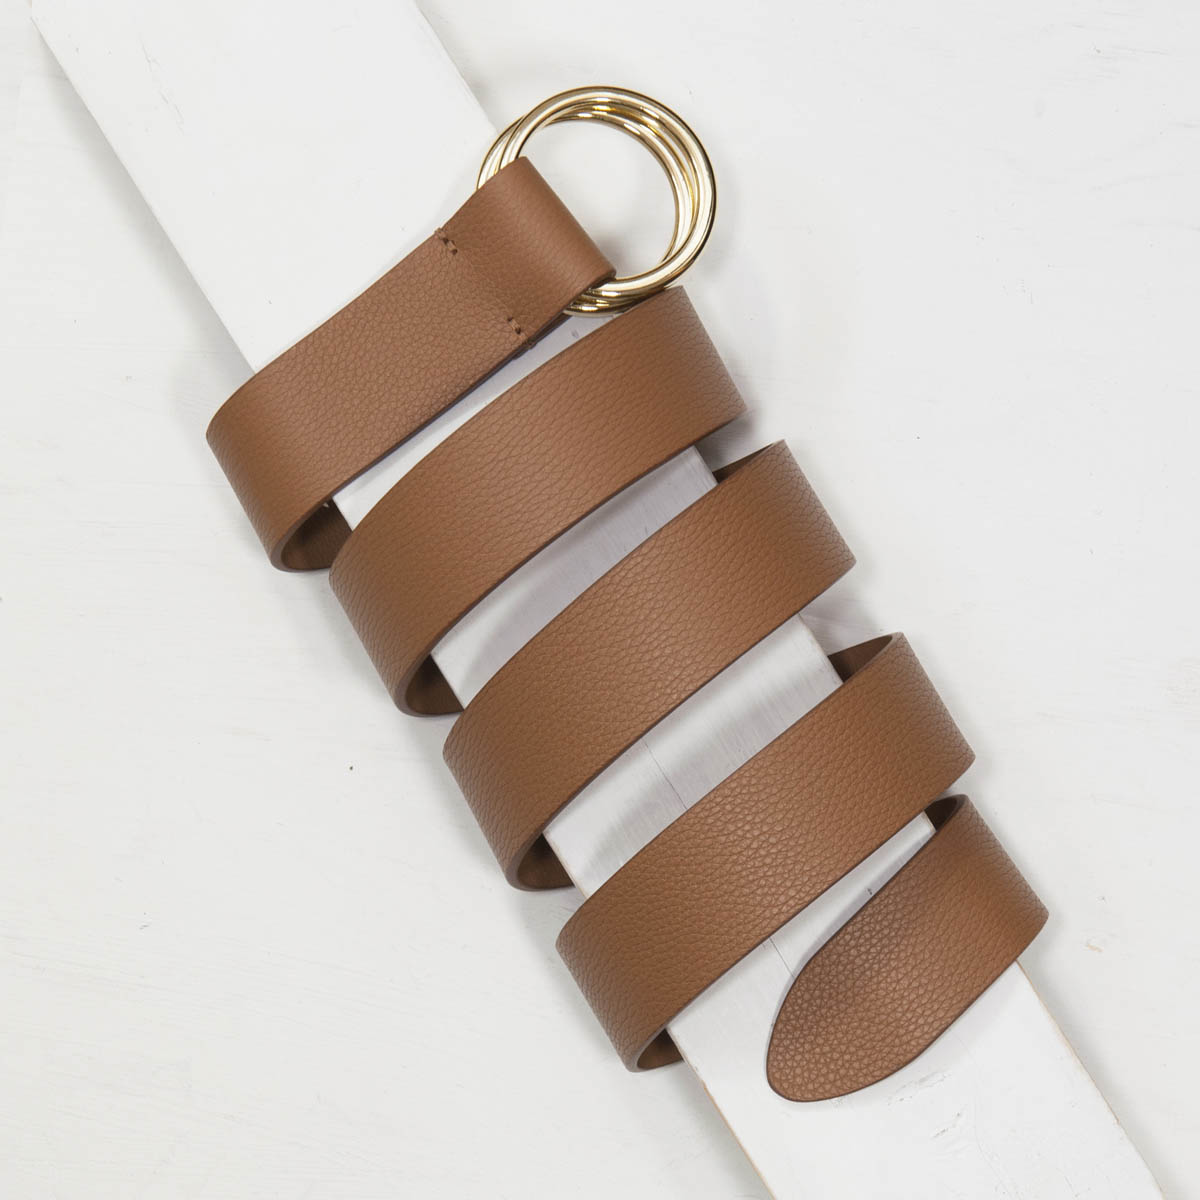 3,5 cm TAN DOUBLE RING GRAINED LEATHER BELT